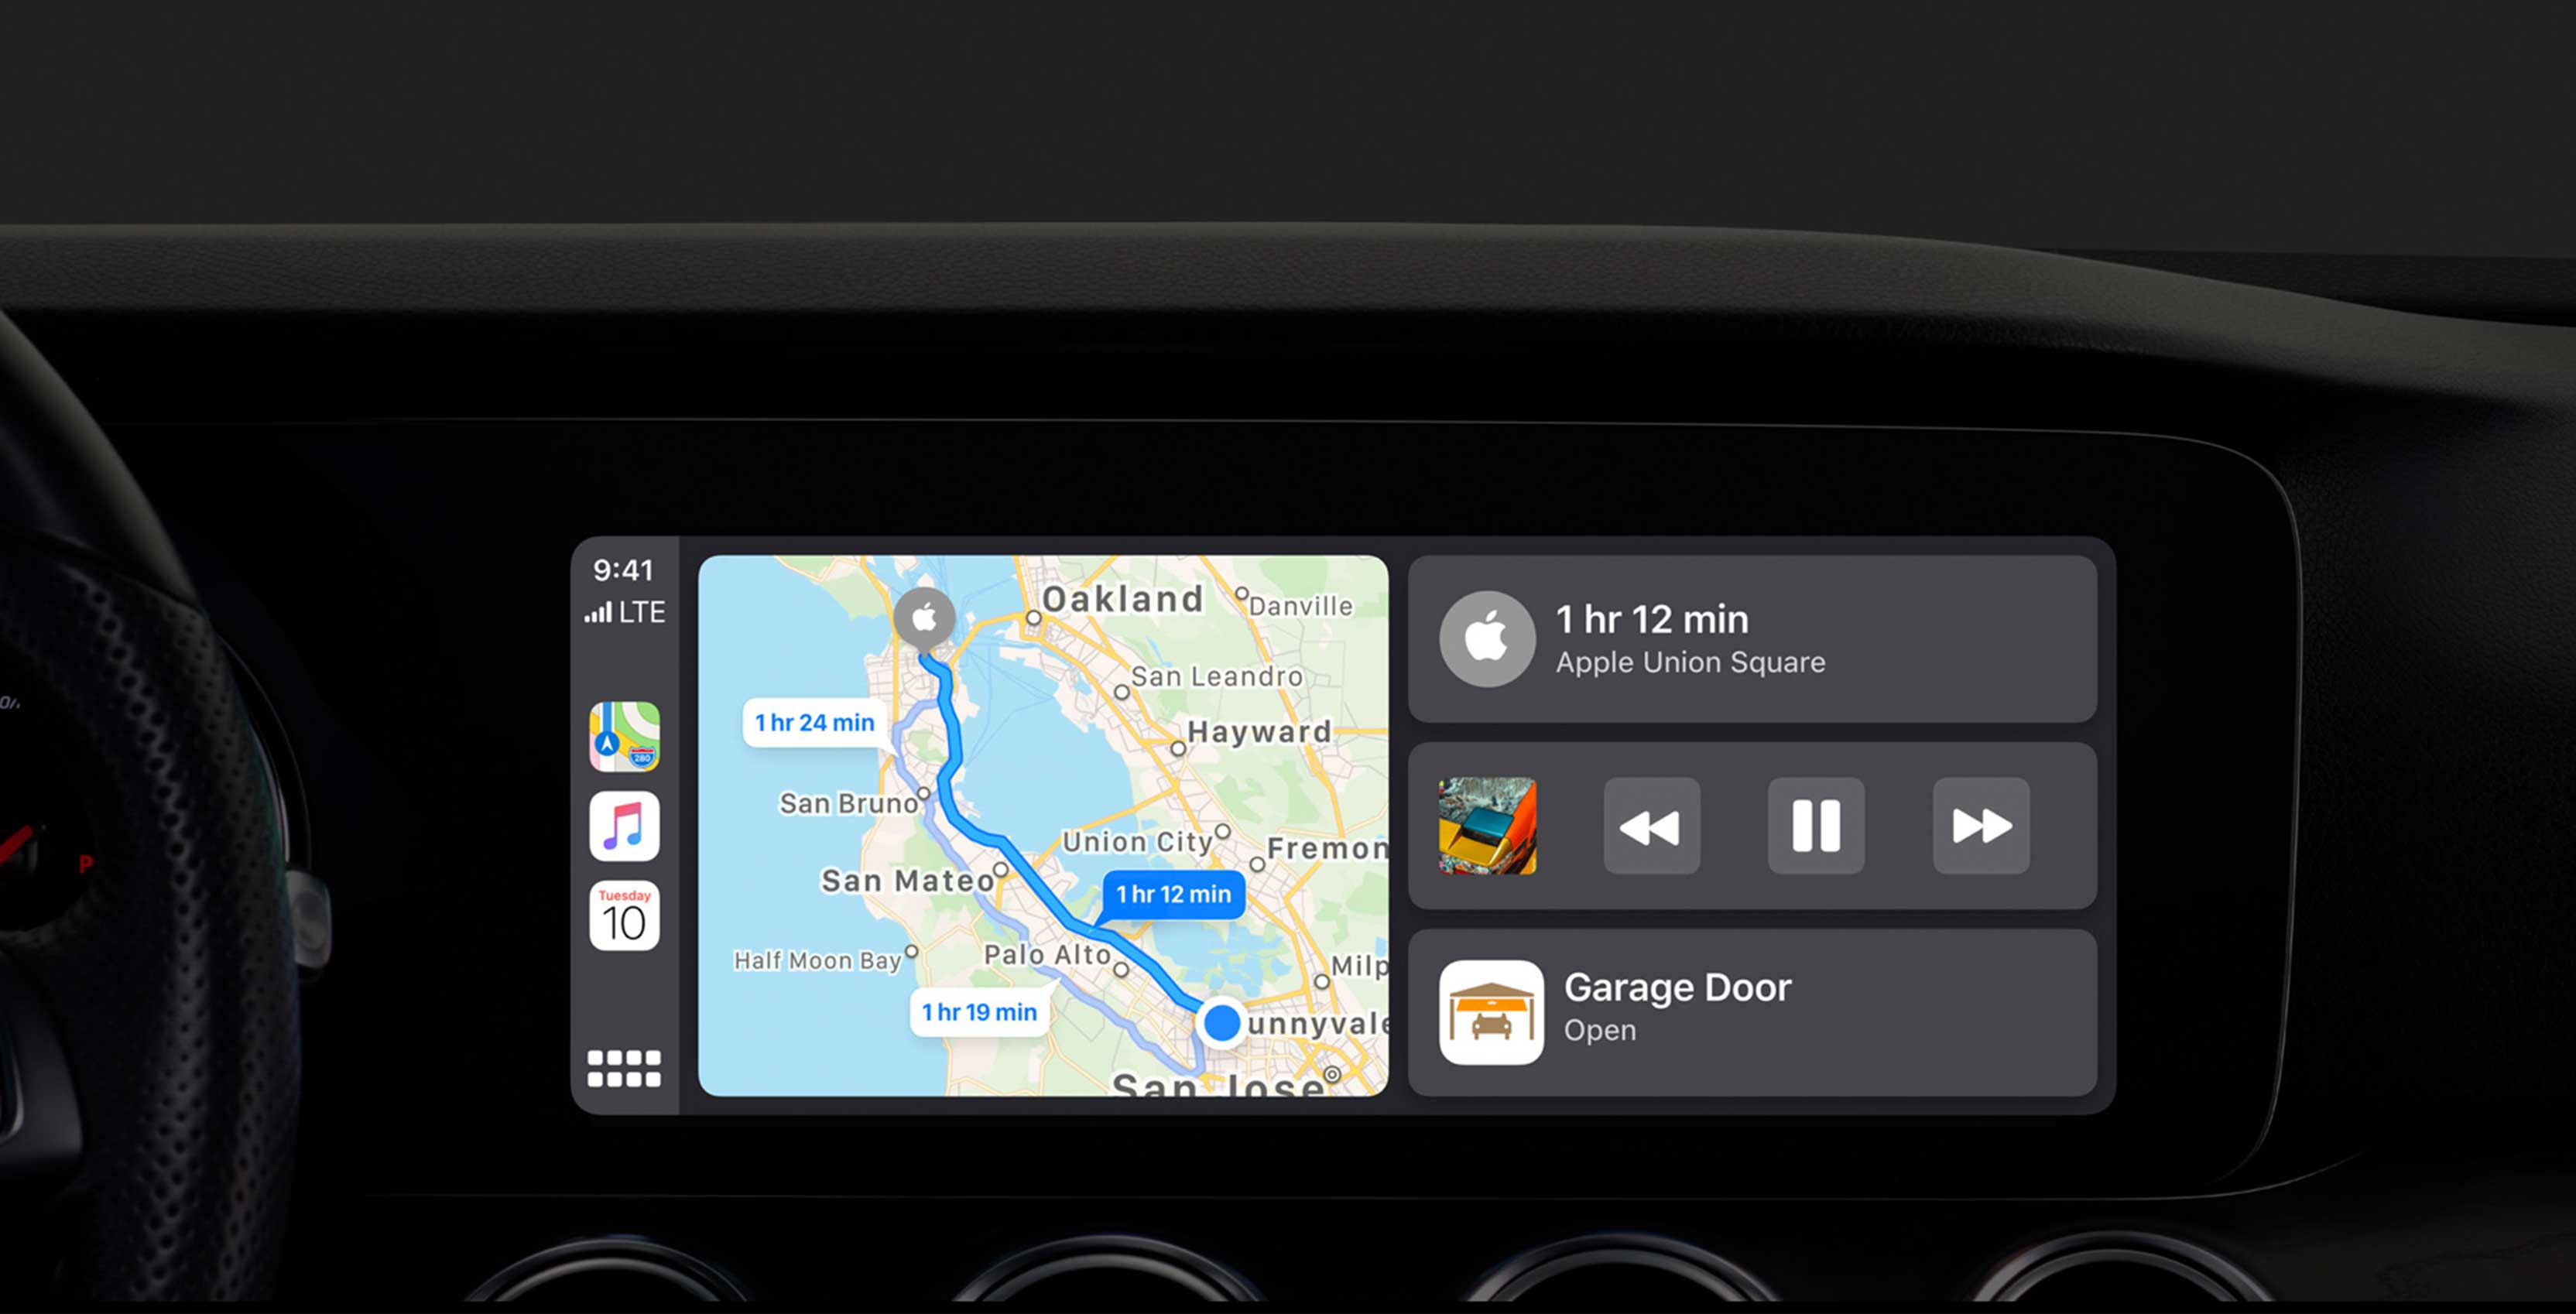 Apple's dual-screen CarPlay feature isn't supported by any cars…yet